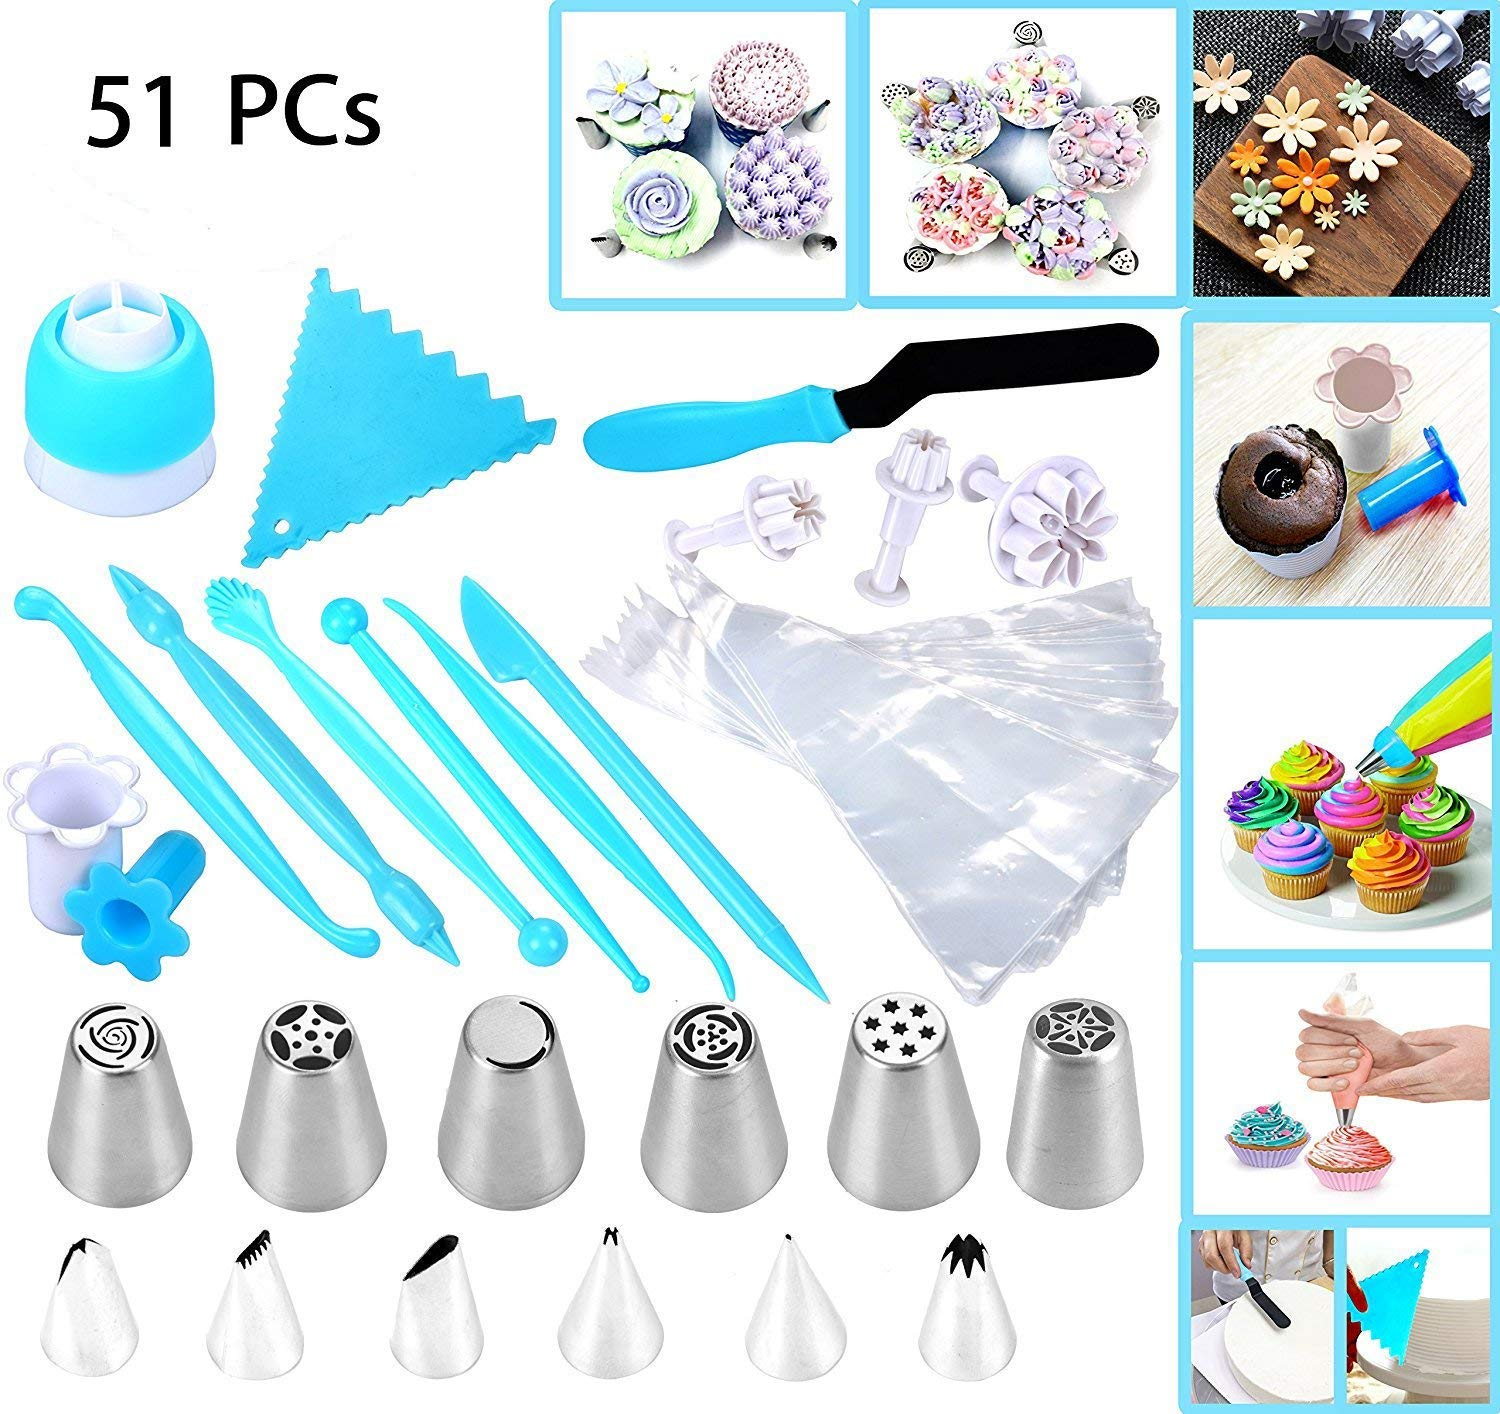 51-Piece Cake Icing and Decorating Kit